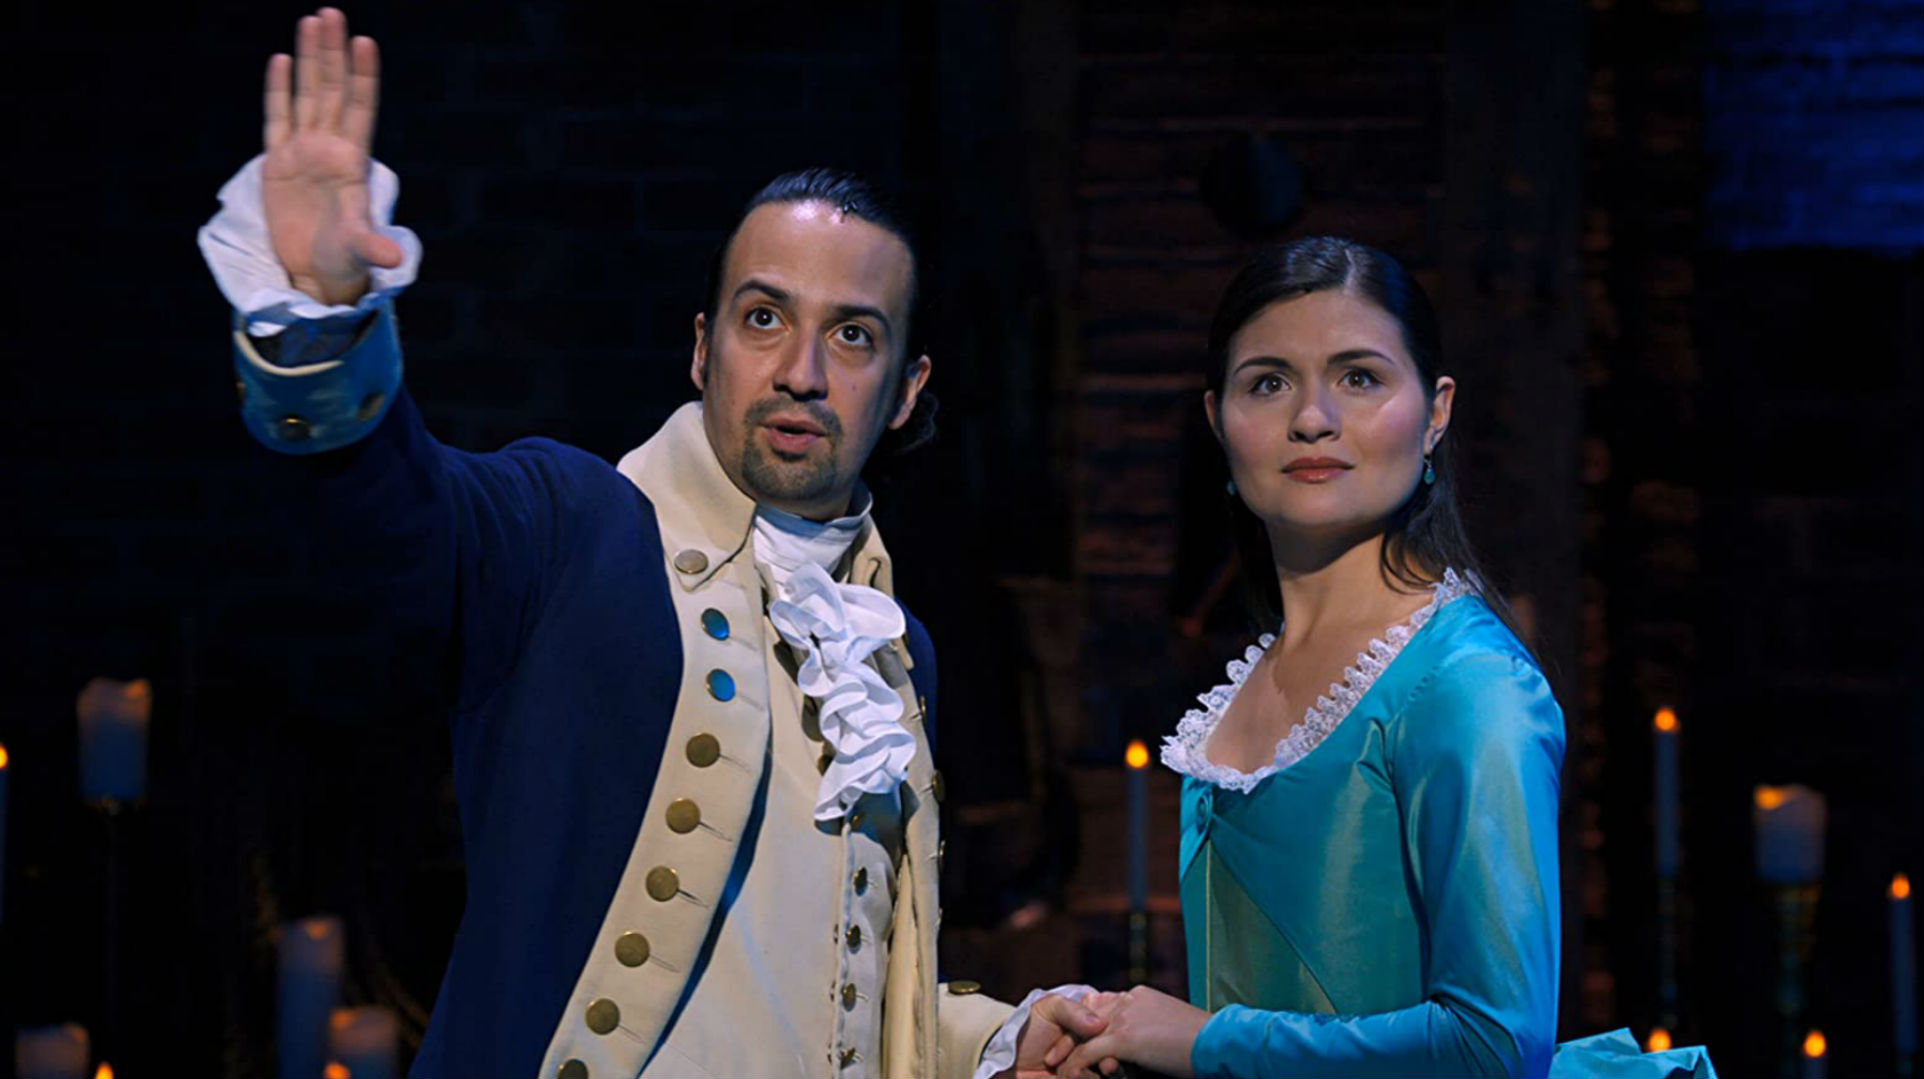 Disney's New Hamilton Trailer Offers a Sneak Peek at the Legendary Musical